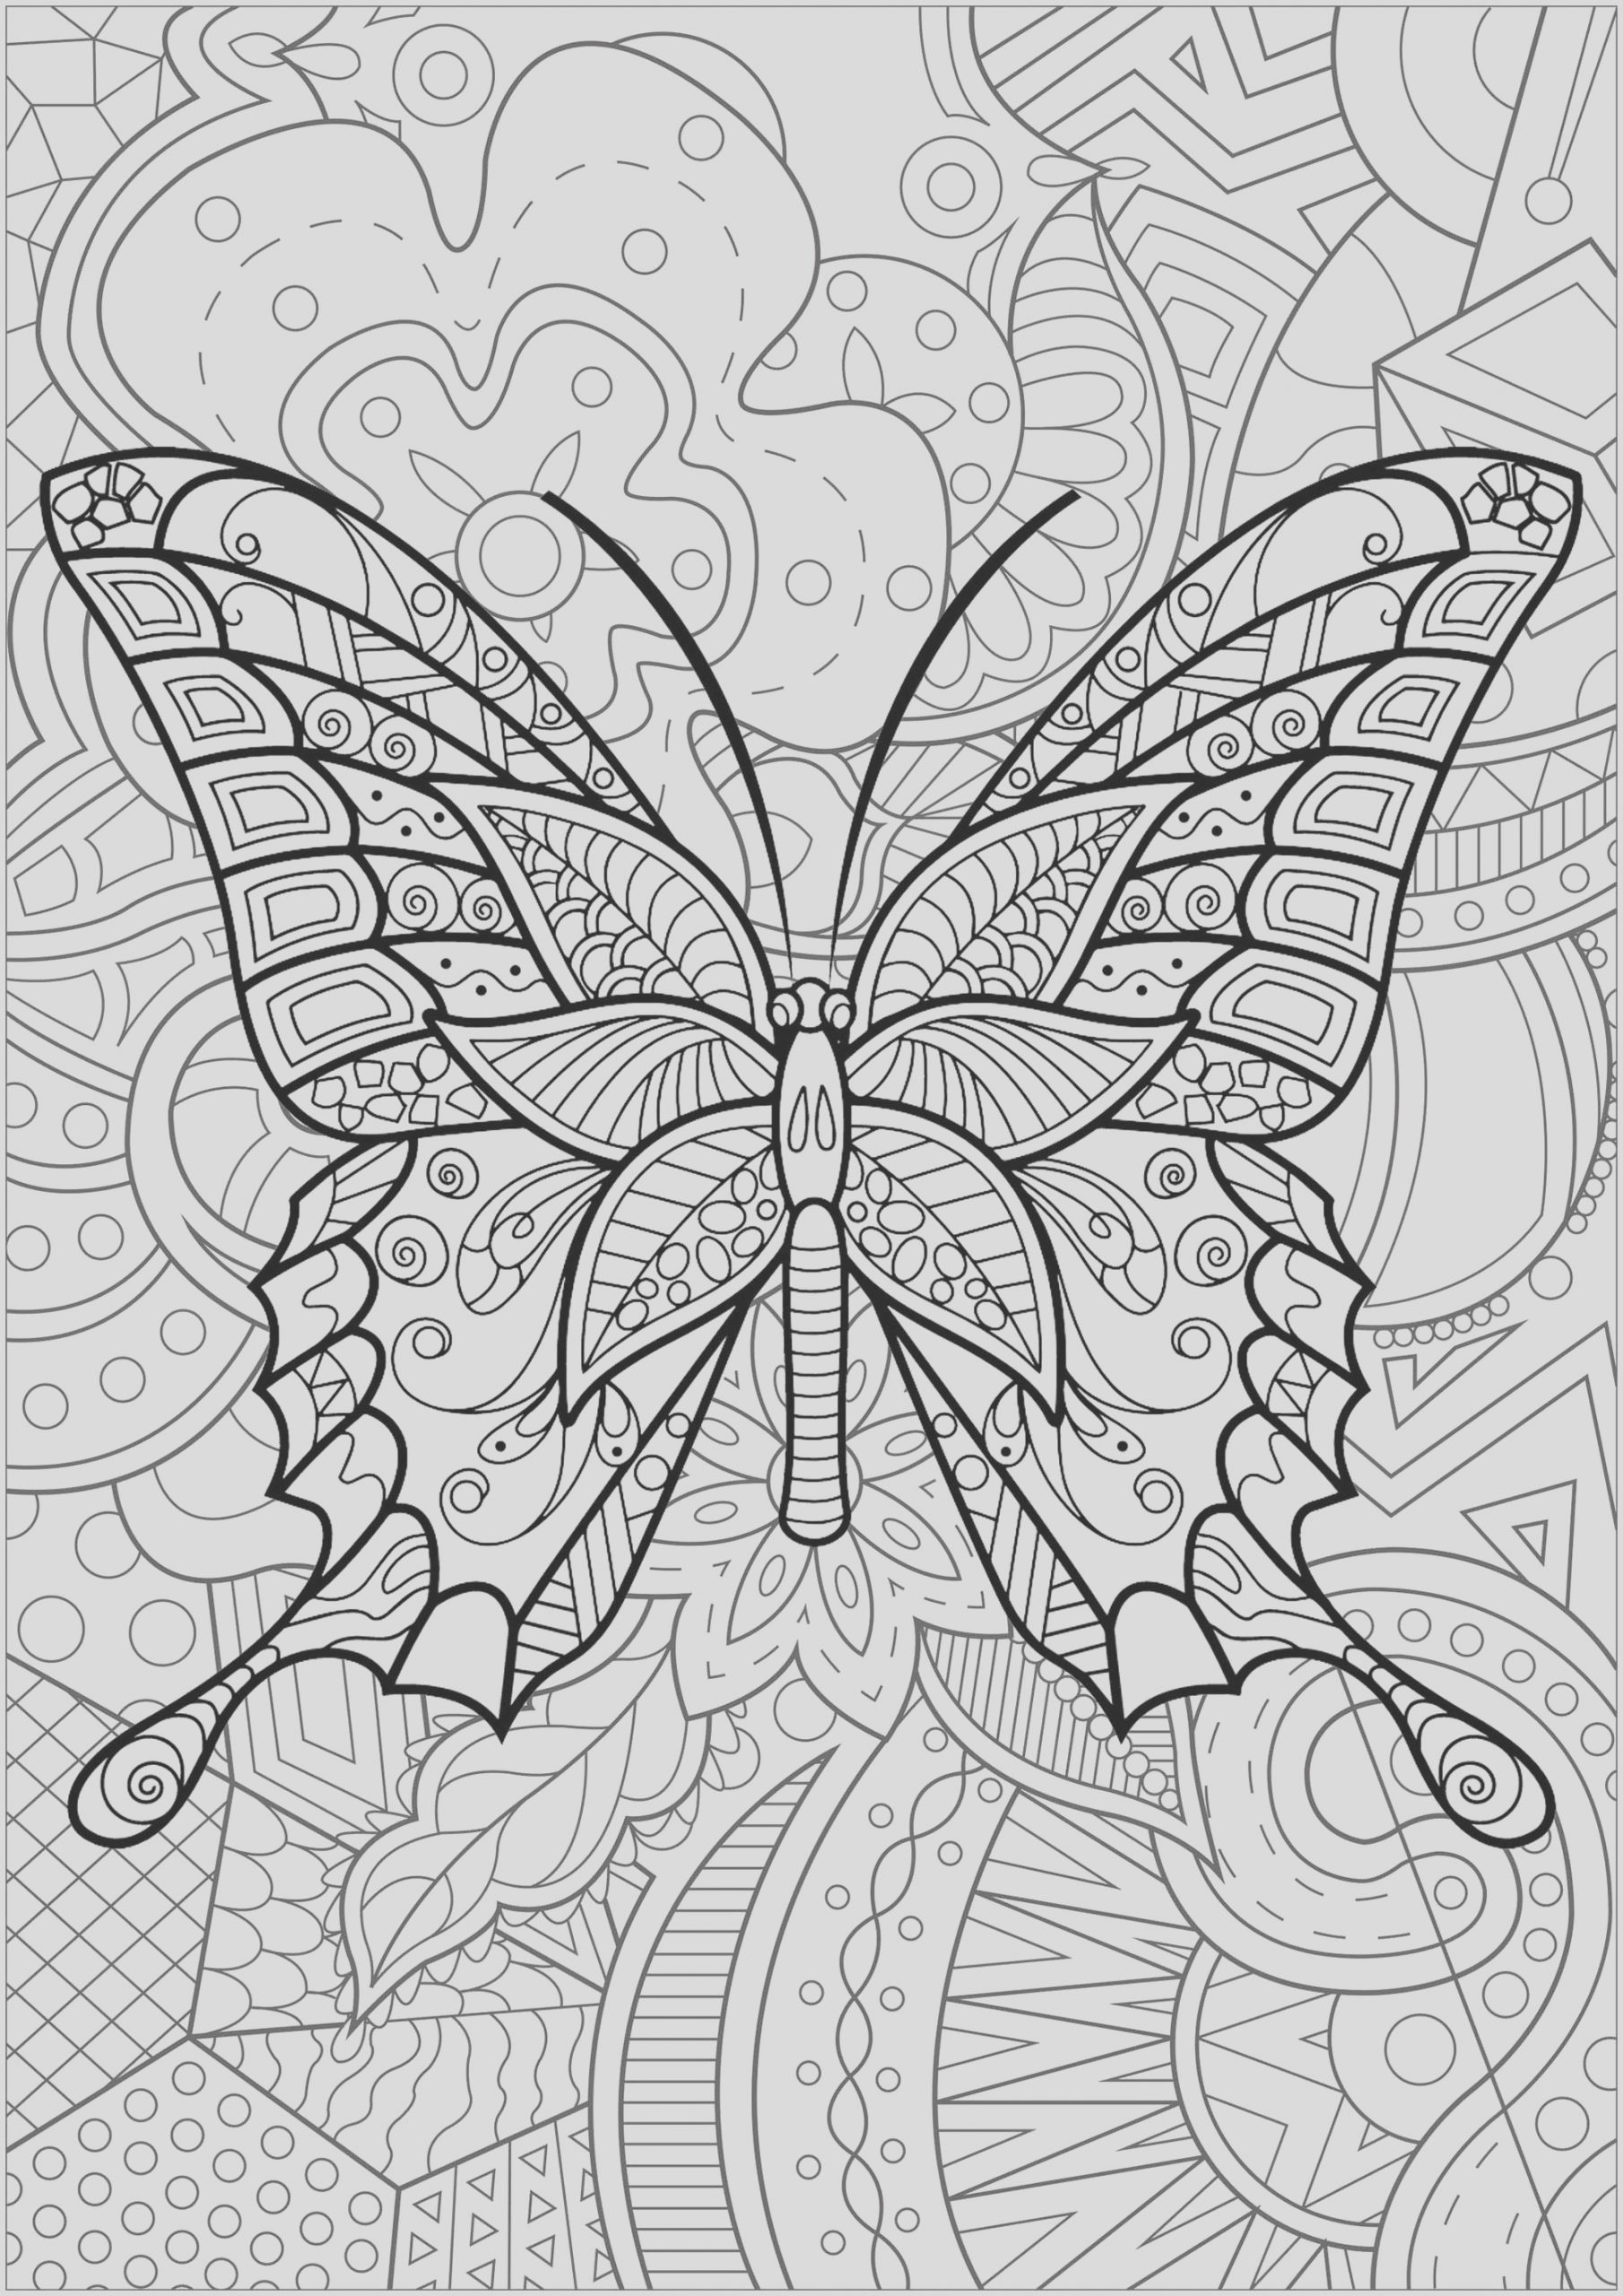 image=insectes coloring butterfly with pattern in background 3 1